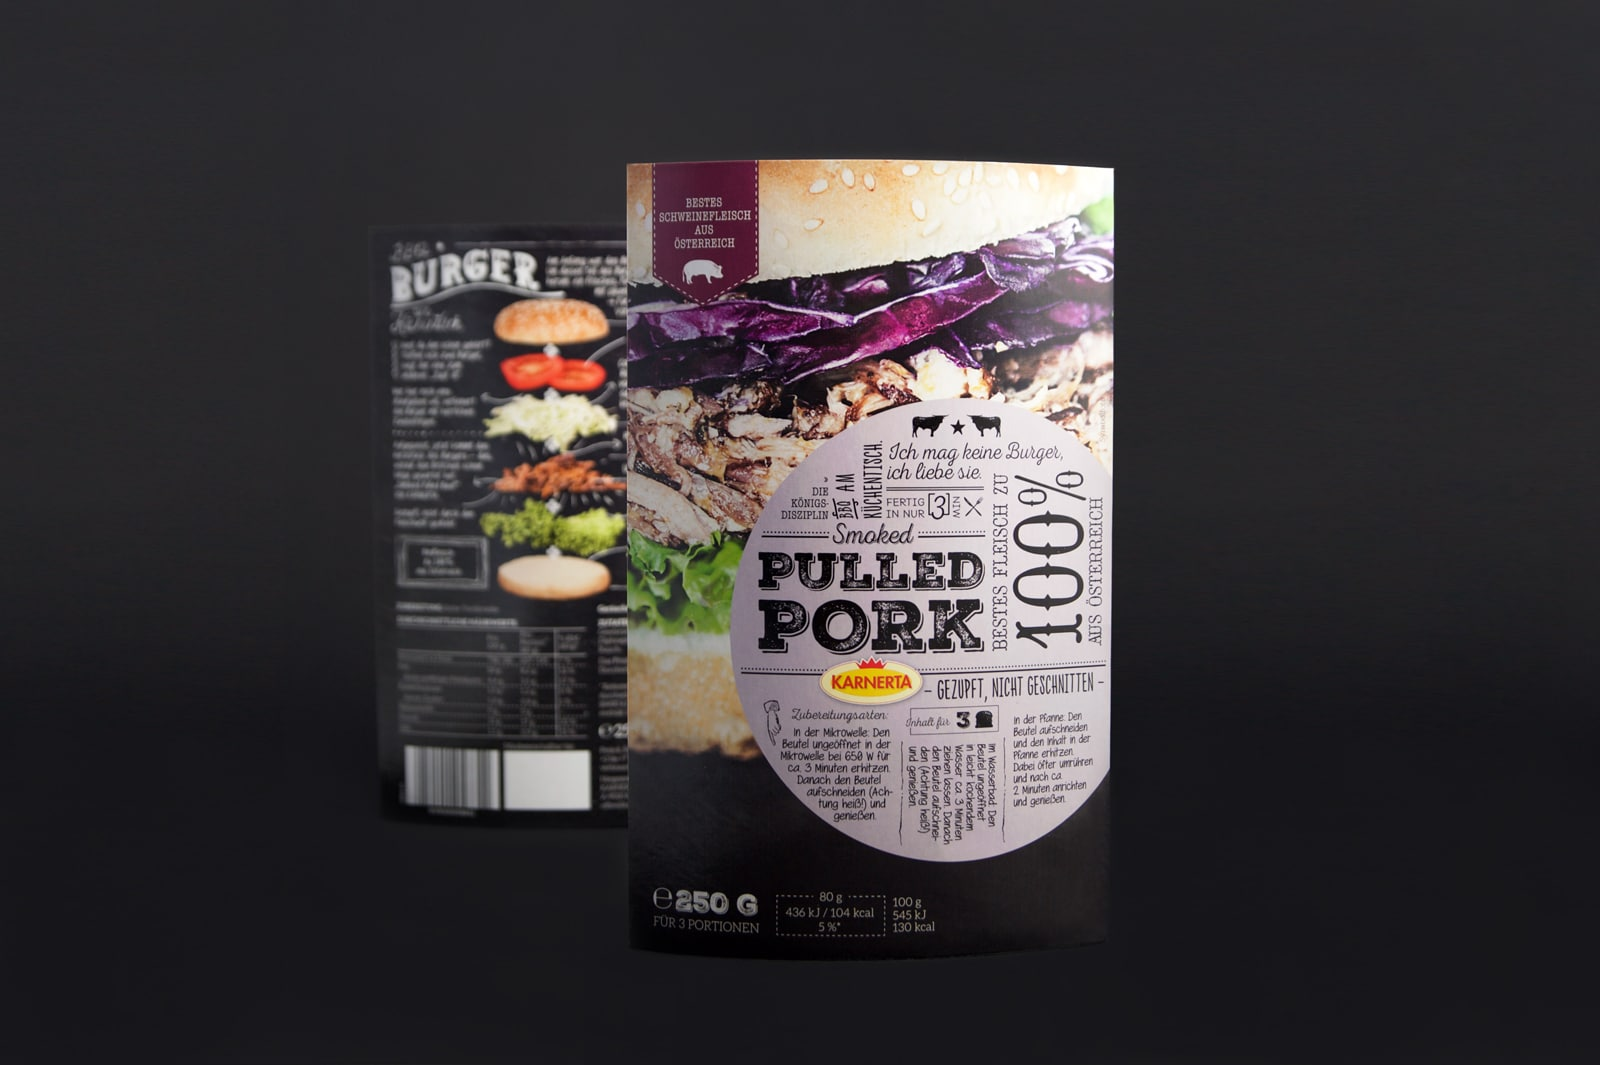 Karnerta Pulled Meat Verpackung Package Design 2015 KUFFERATH